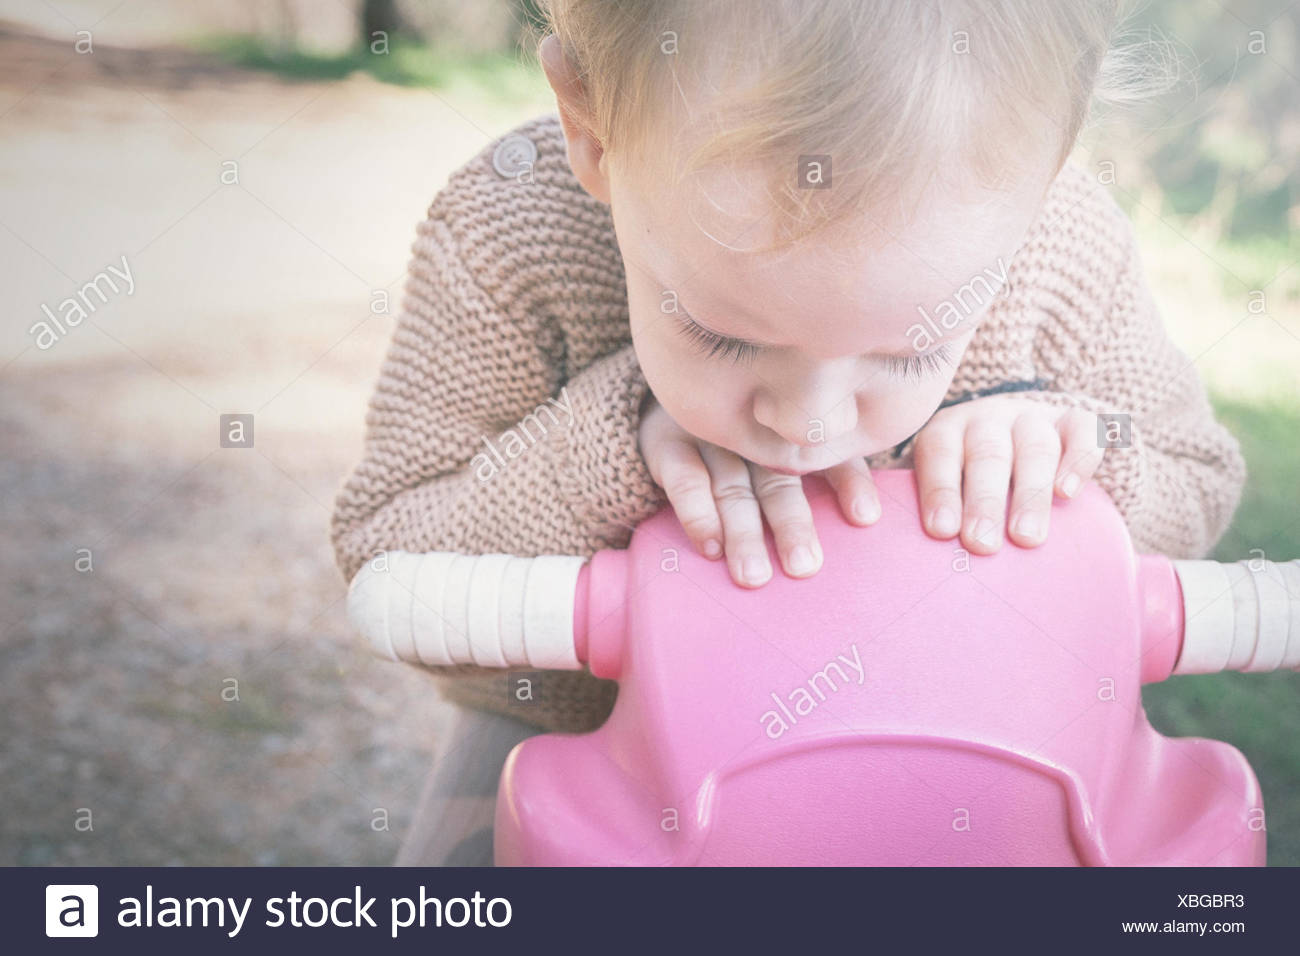 Boy sitting on a toy bicycle - Stock Image